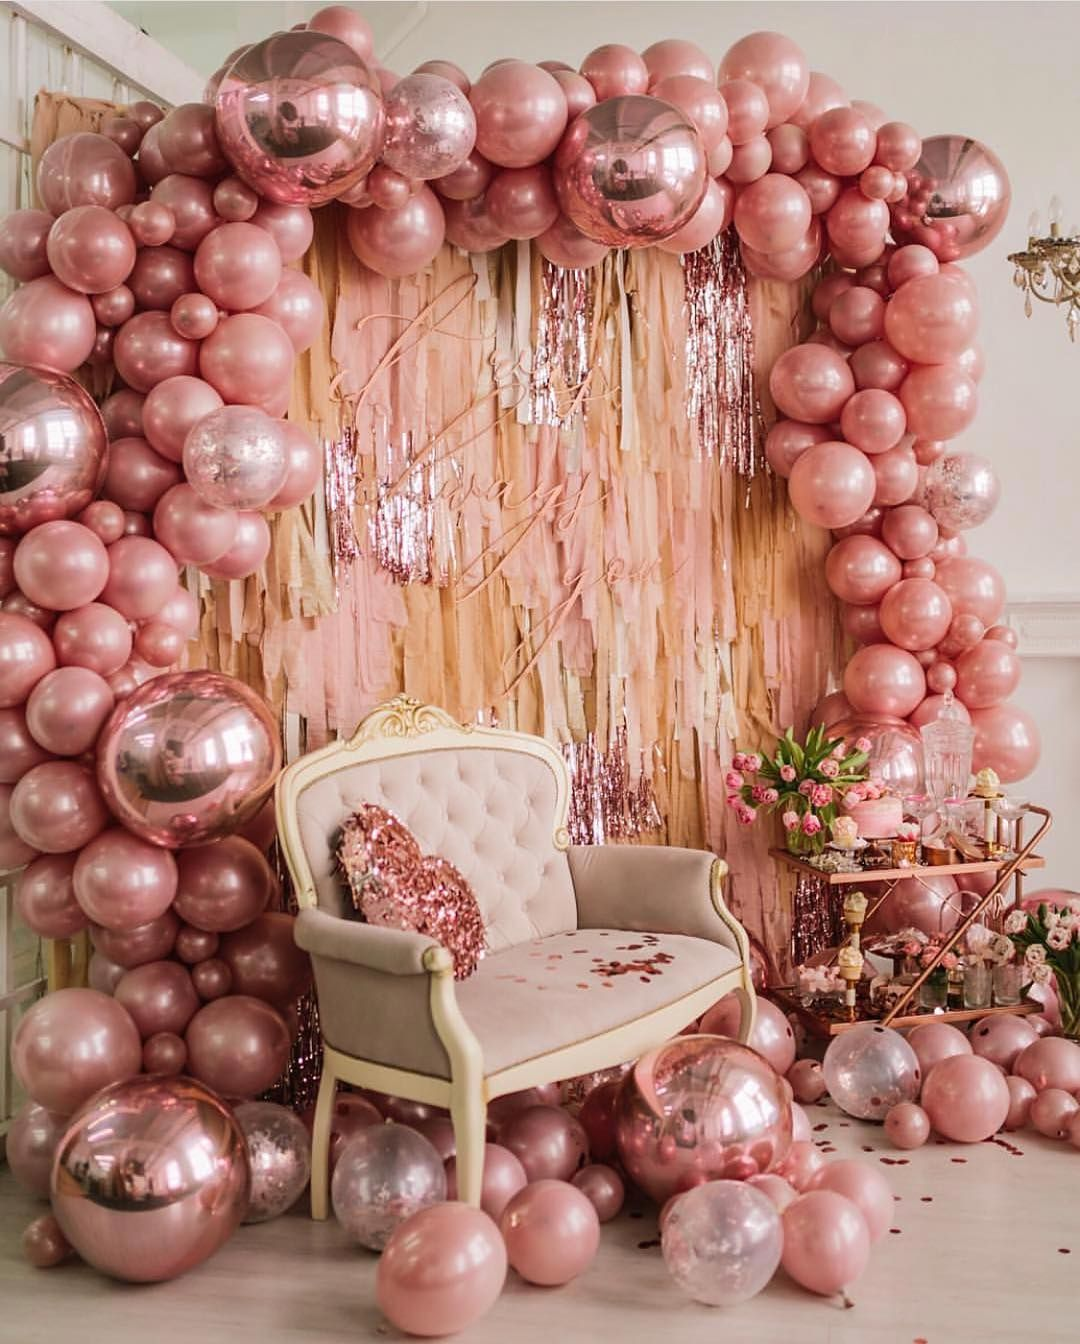 For The Of Parties On Instagram Rose Gold All Day Every Day By Aireendecor Kids Rosegold R Gold Birthday Party Rose Gold Party 18th Birthday Party